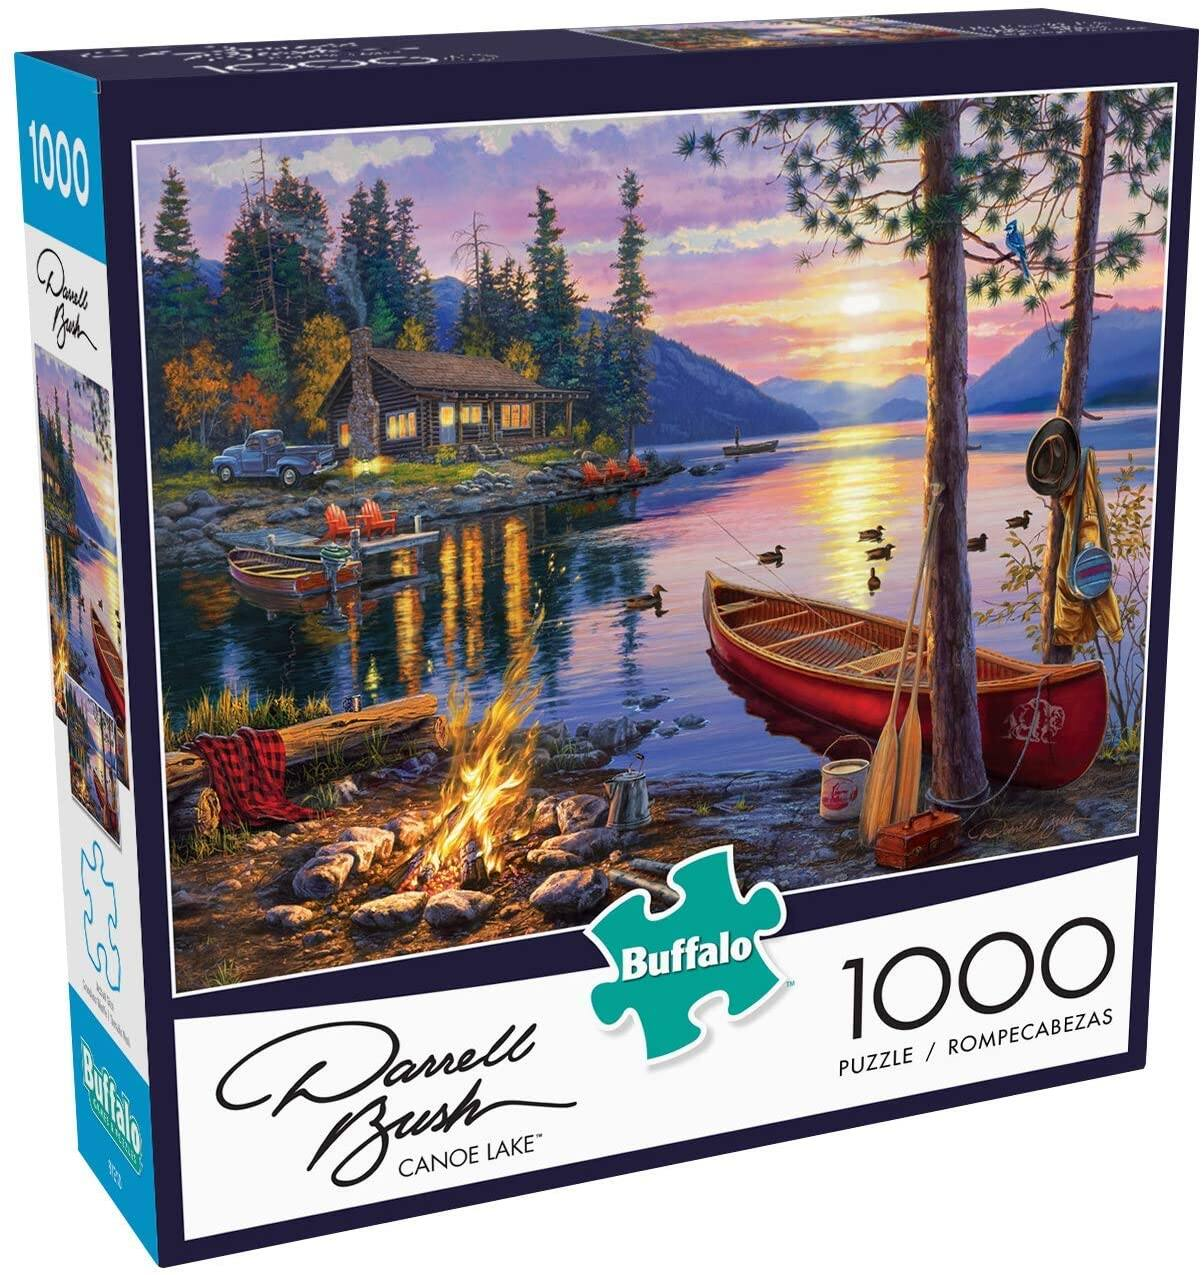 Buffalo Games - Assorted 1000 Piece Jigsaw Puzzles $9.97 ea. - Amazon